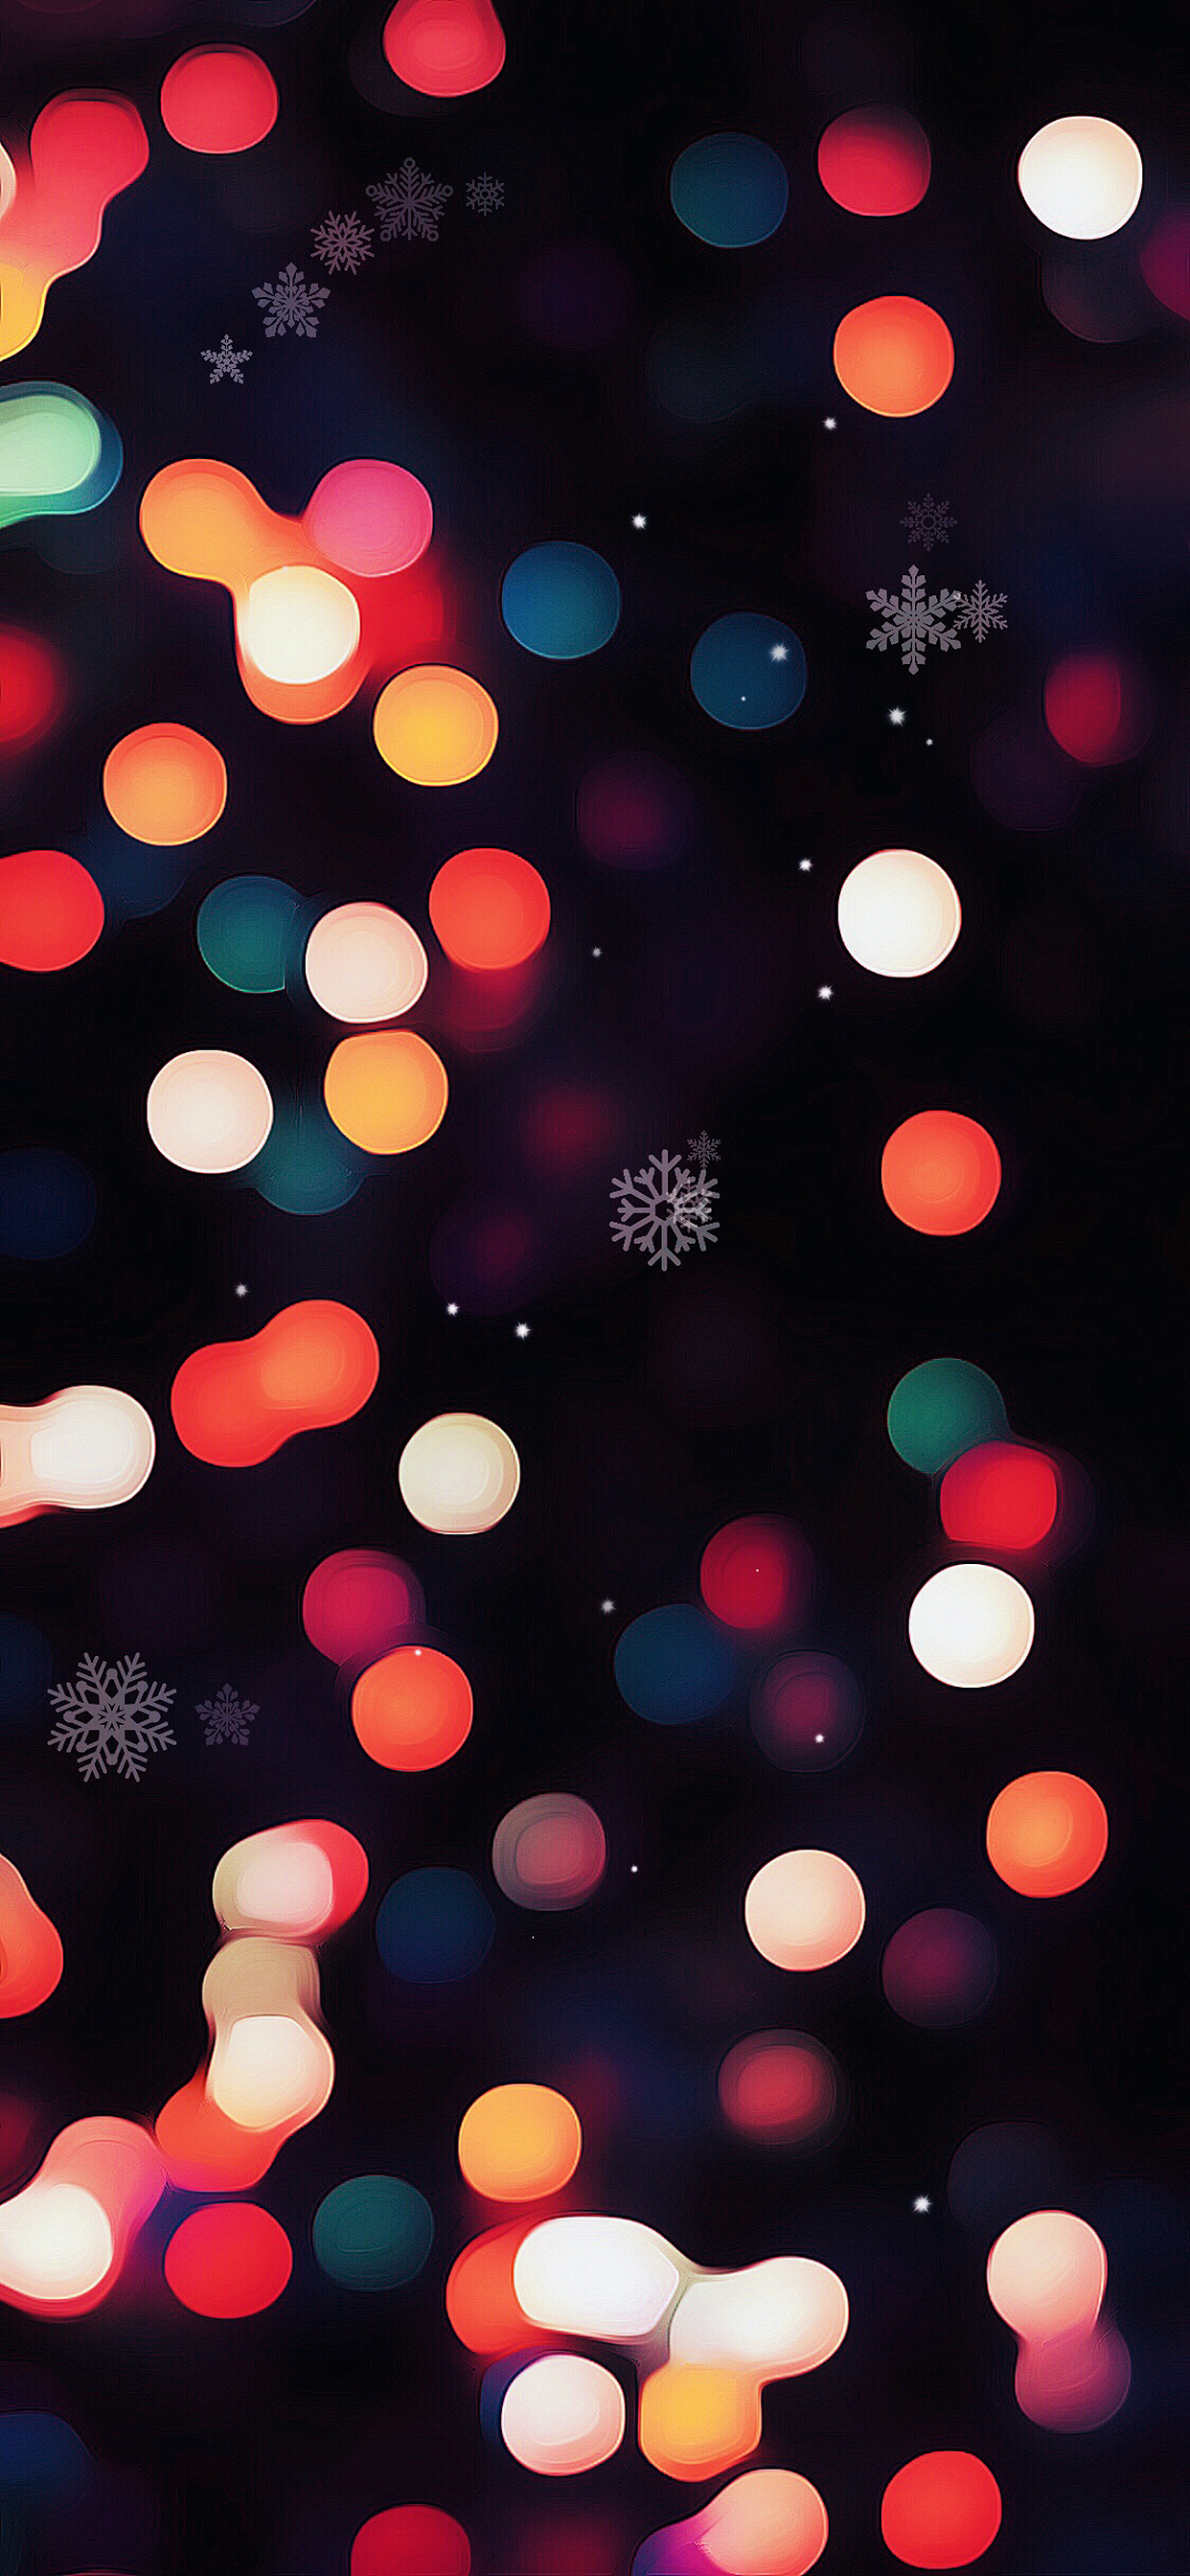 Christmas Bokeh 2018 iPhone wallpaper AR72014